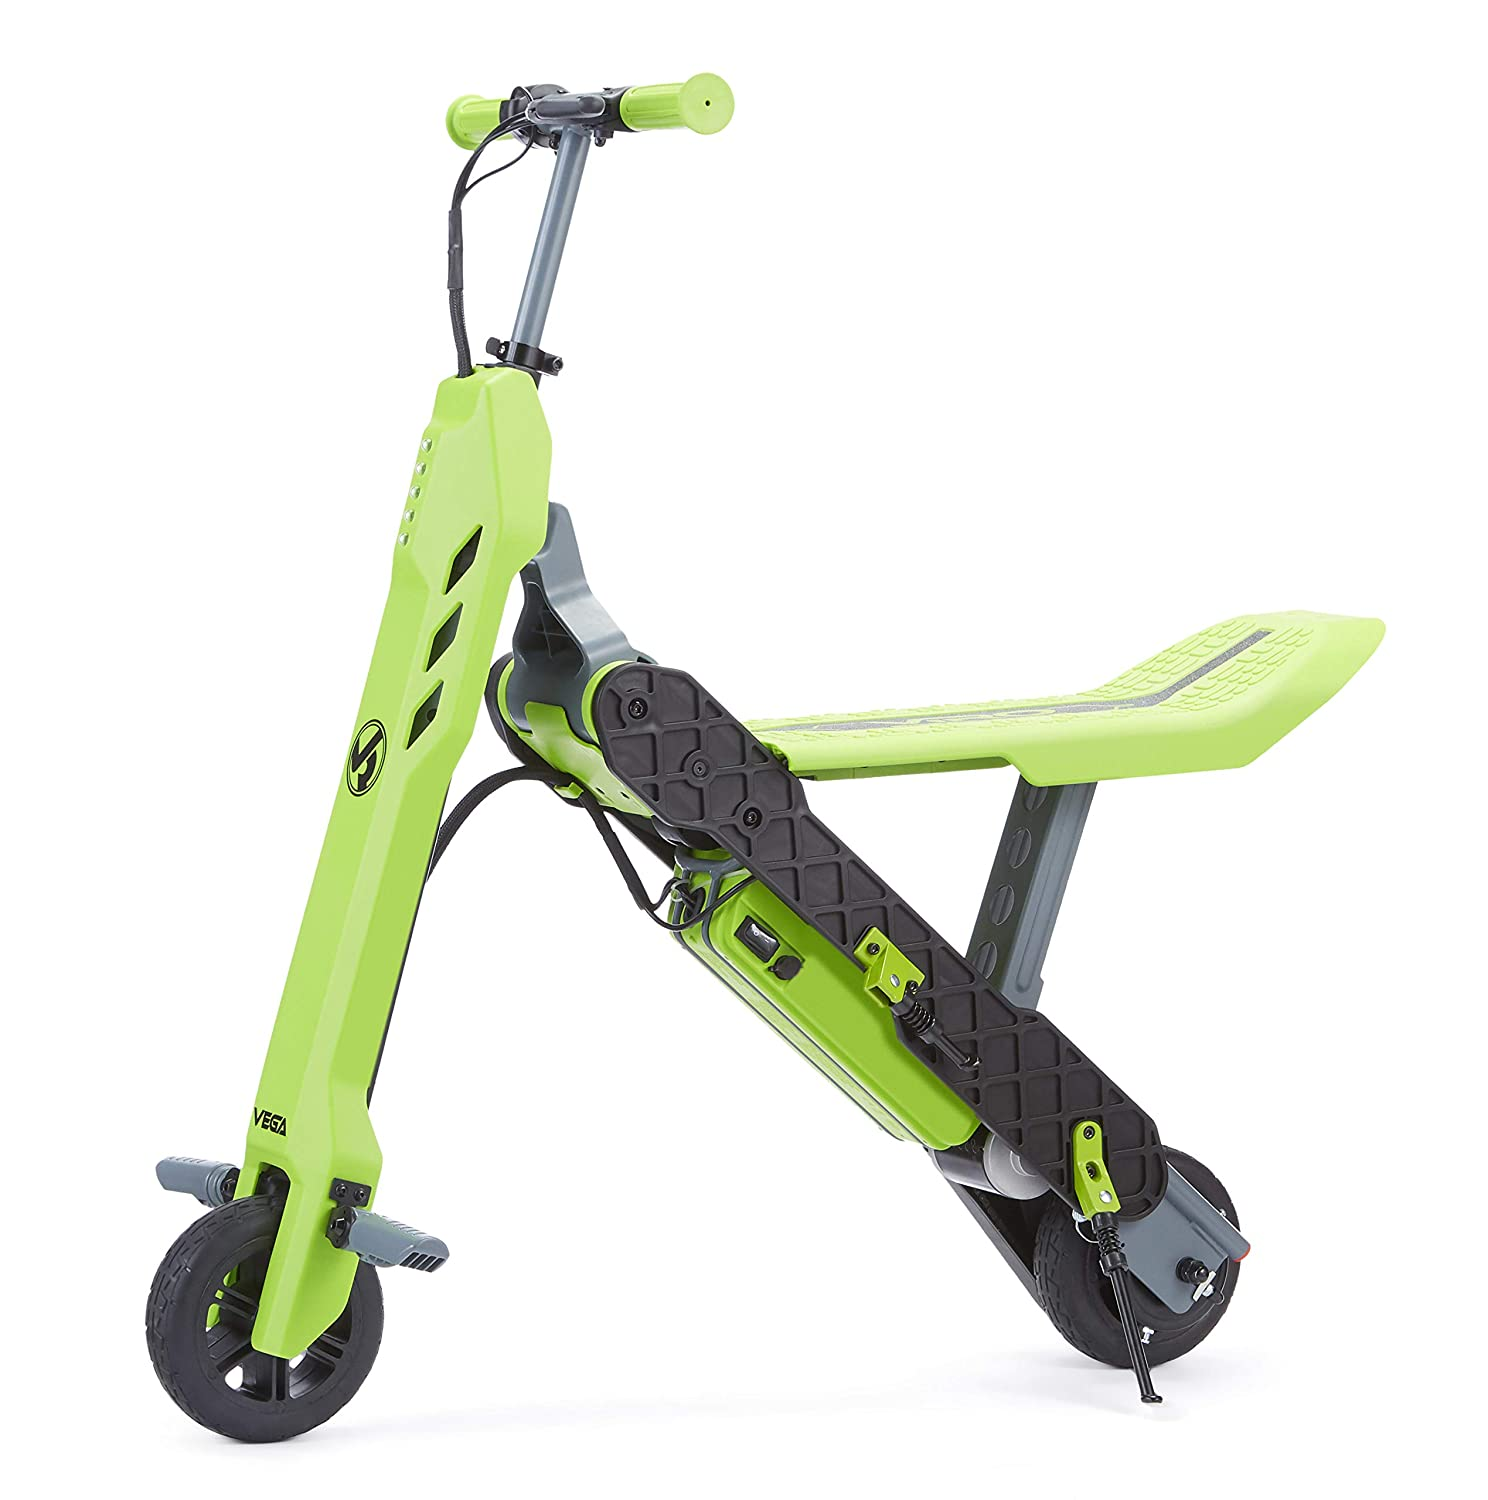 Electric Scooter Bike >> Amazon Com Viro Rides Vega Transforming 2 In 1 Electric Scooter